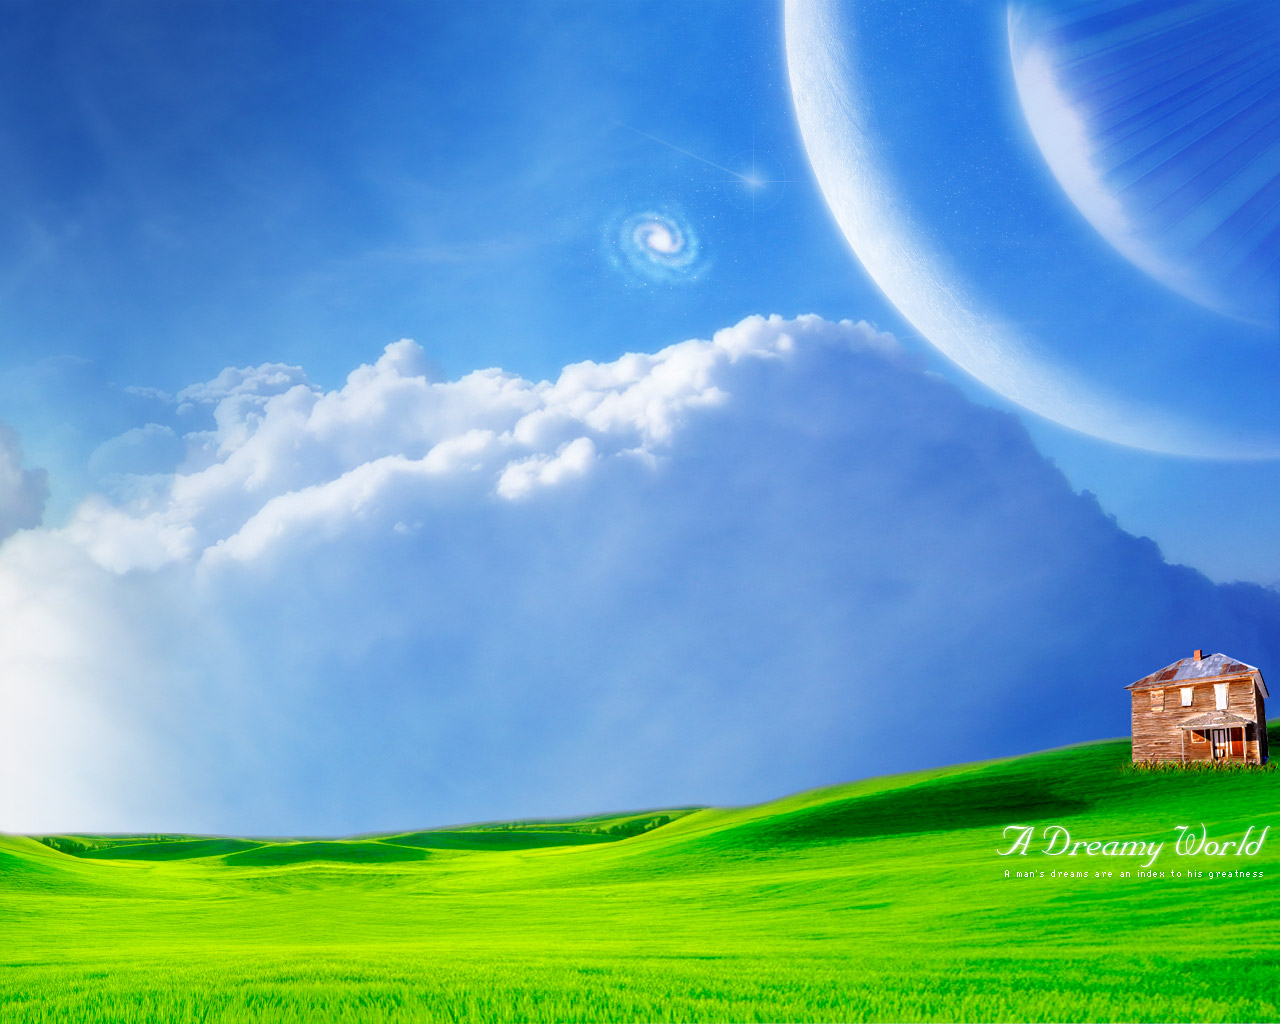 A Dreamy World HD wallpapers, Desktop wallpaper - most viewed